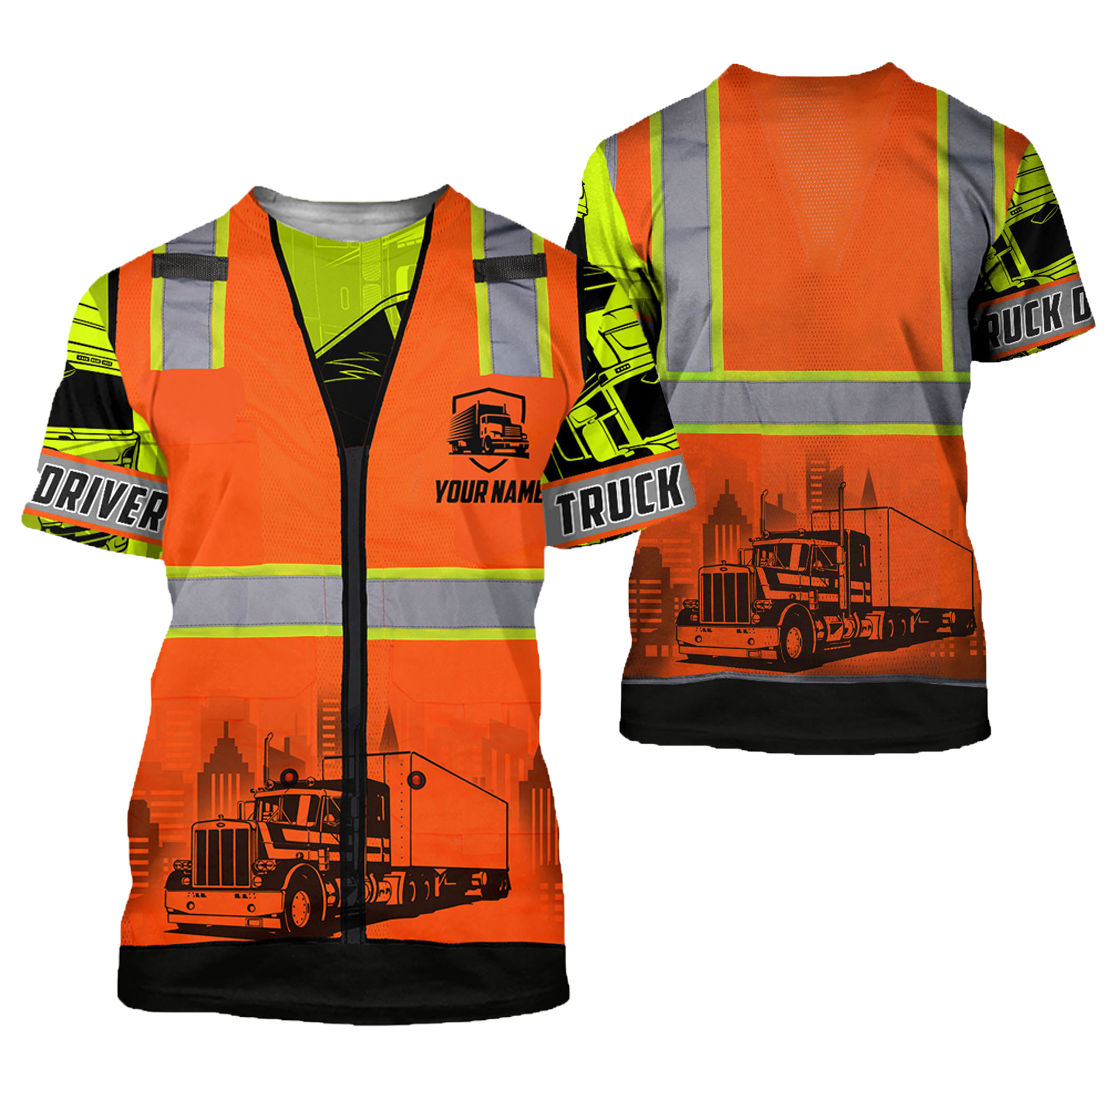 Personalized Trucker Safety 3D All Over Printed Shirts For Men And Women TN - T-shirt / 4XL